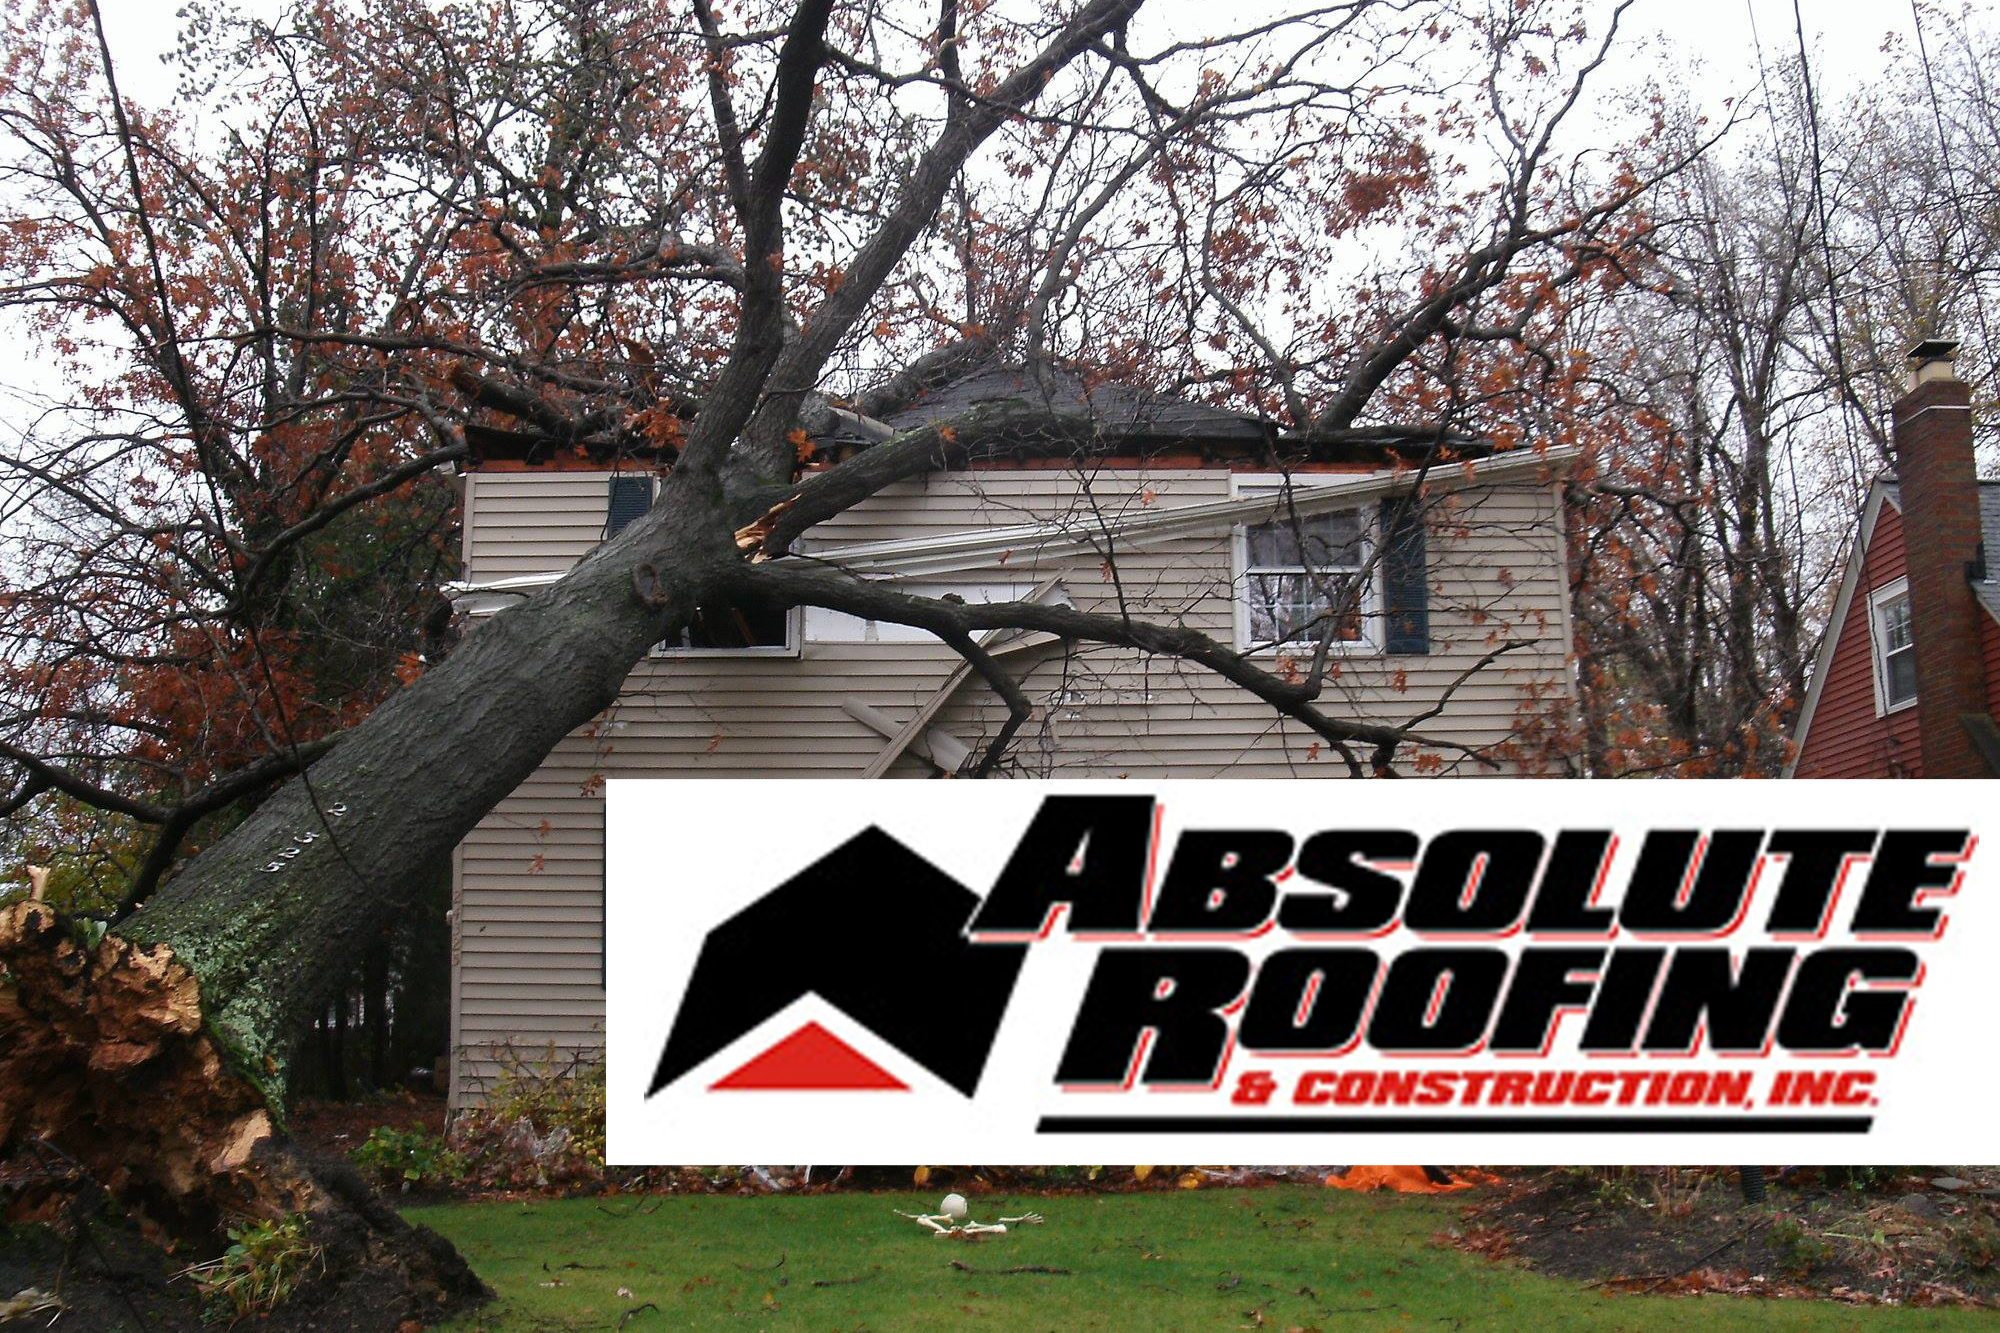 Absolute Roofing is a family owned company that has been in business for over 30 years. Absolute has grown into a leader in the roofing industry with a reputation for customer service excellence. Through the years continuation of focus on the highest level of customer service has led to the reputation of service excellence that Absolute Roofing currently enjoys. This reputation of service excellence attracts high caliber applicants.